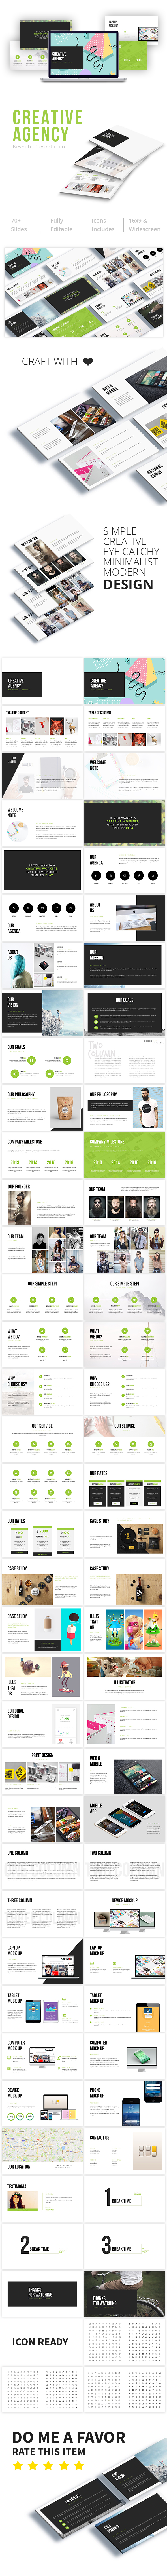 Creative Agency Keynote Presentation - Creative Keynote Templates